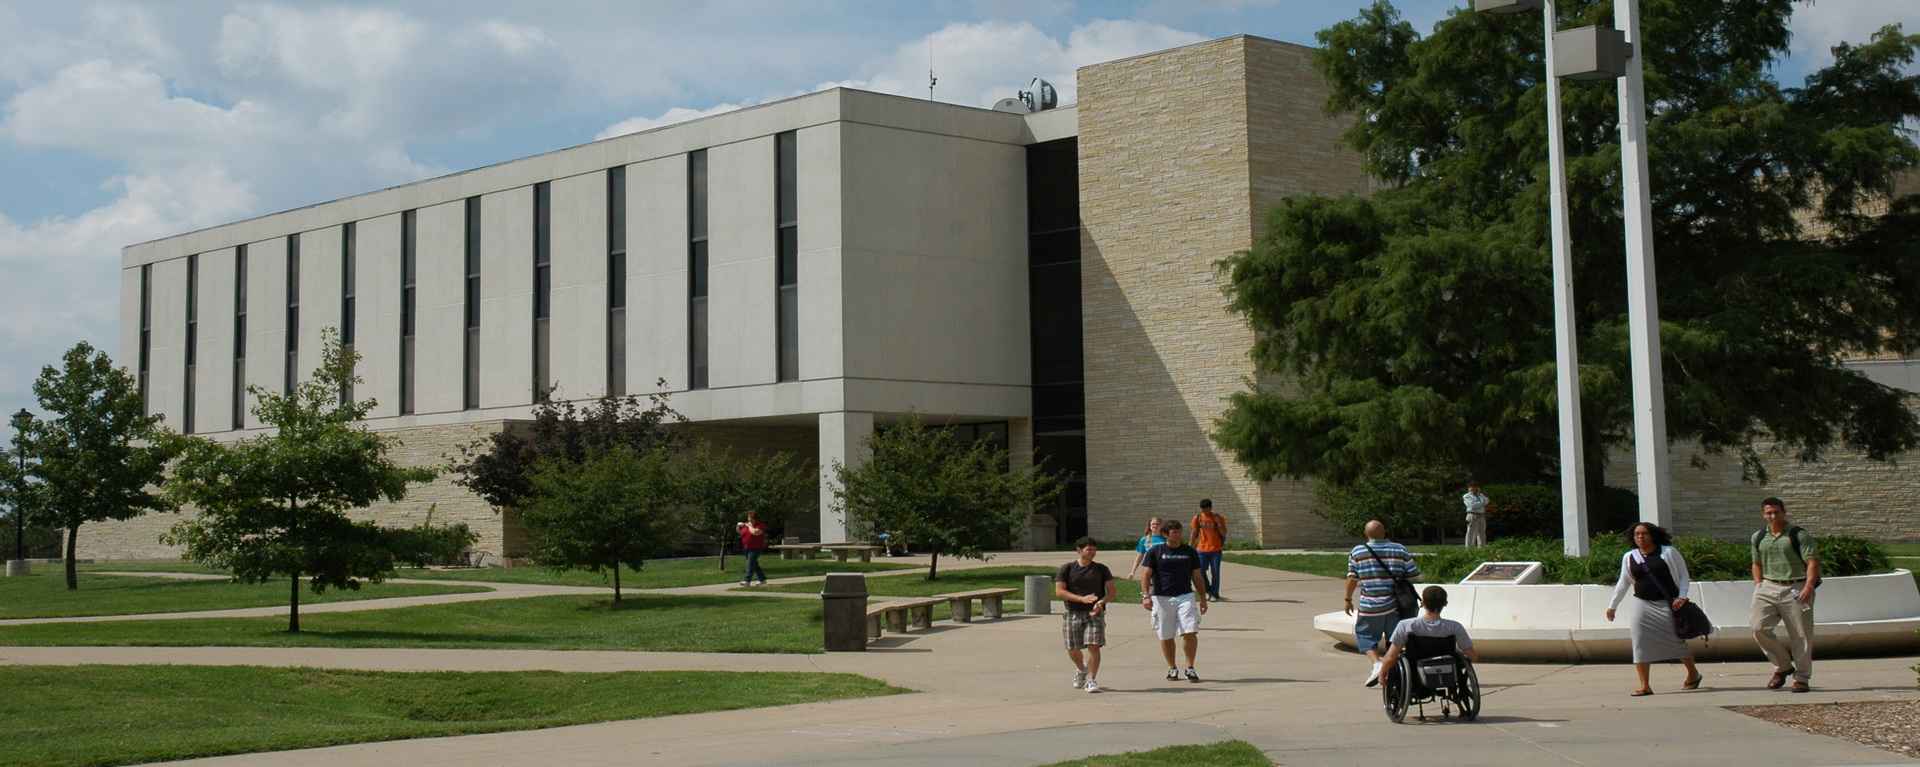 Picture of Henderson building with people walking around outside.